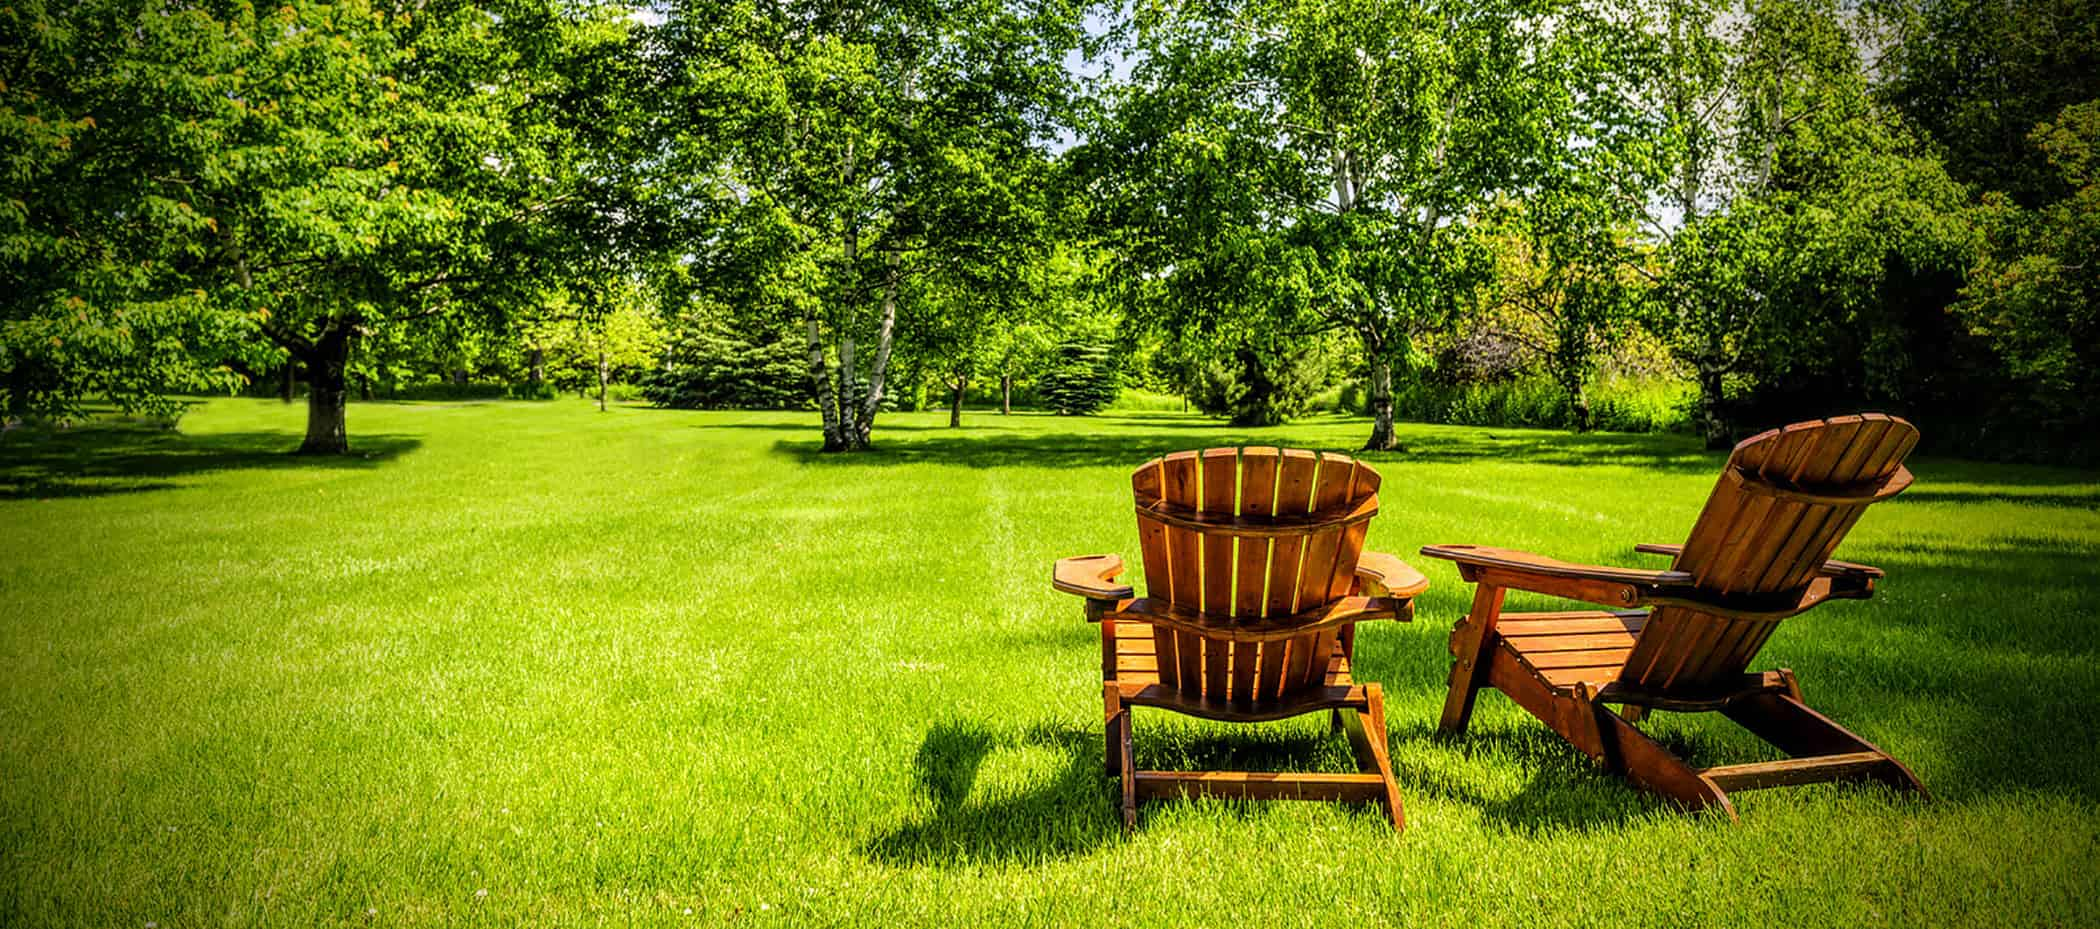 background image of mowed lawn